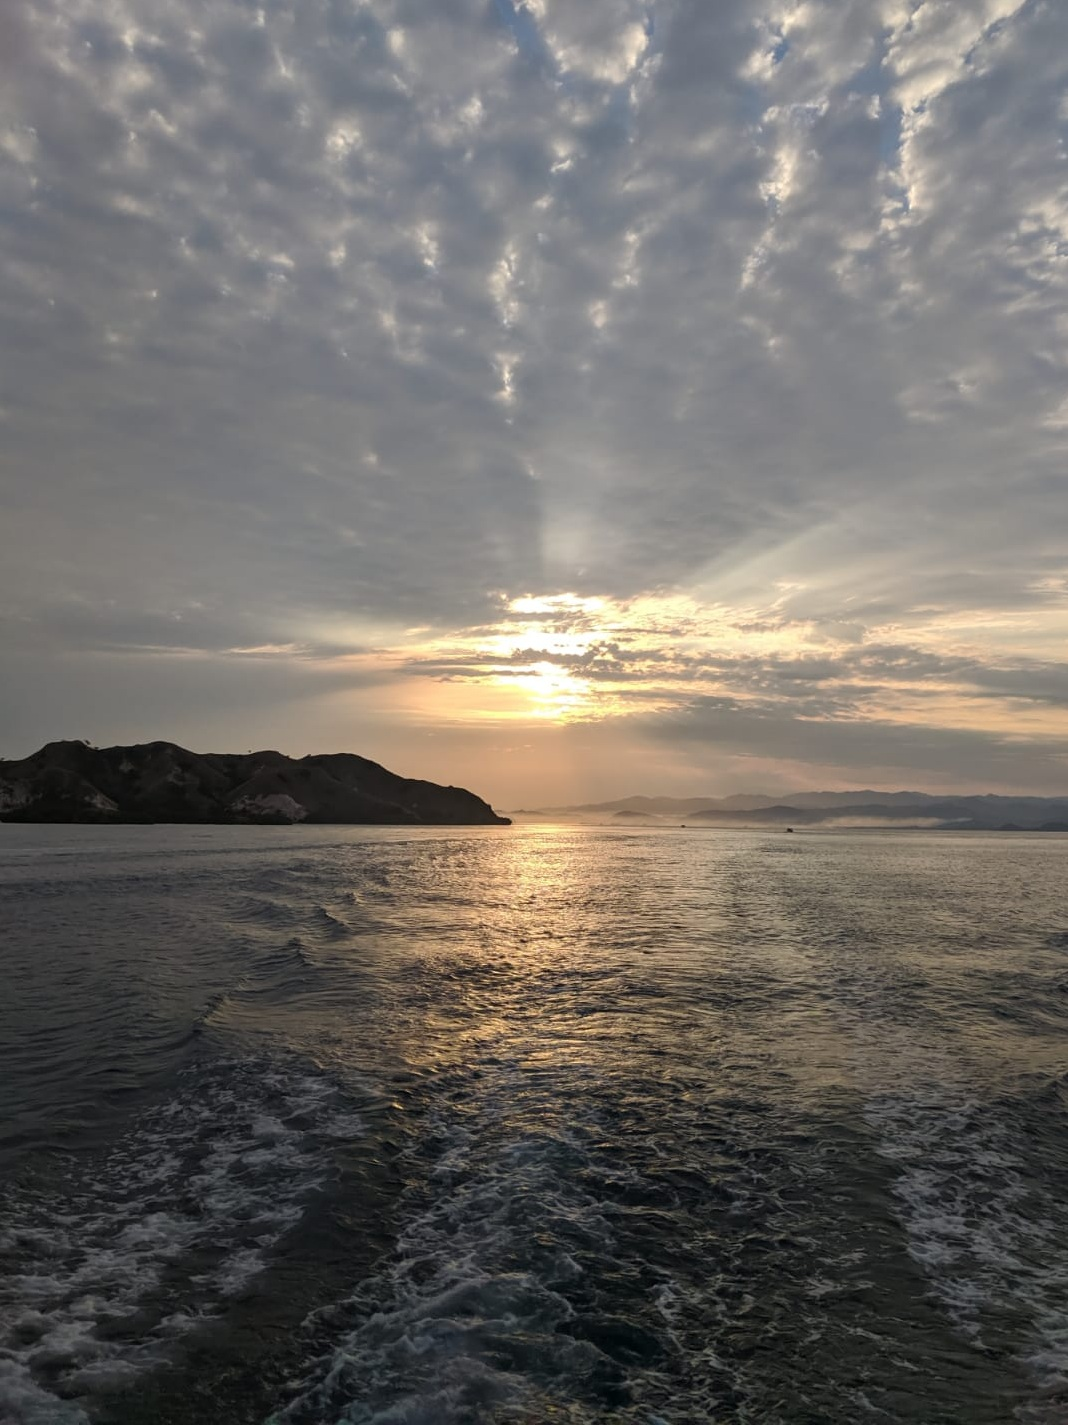 Sunrise from the boat.